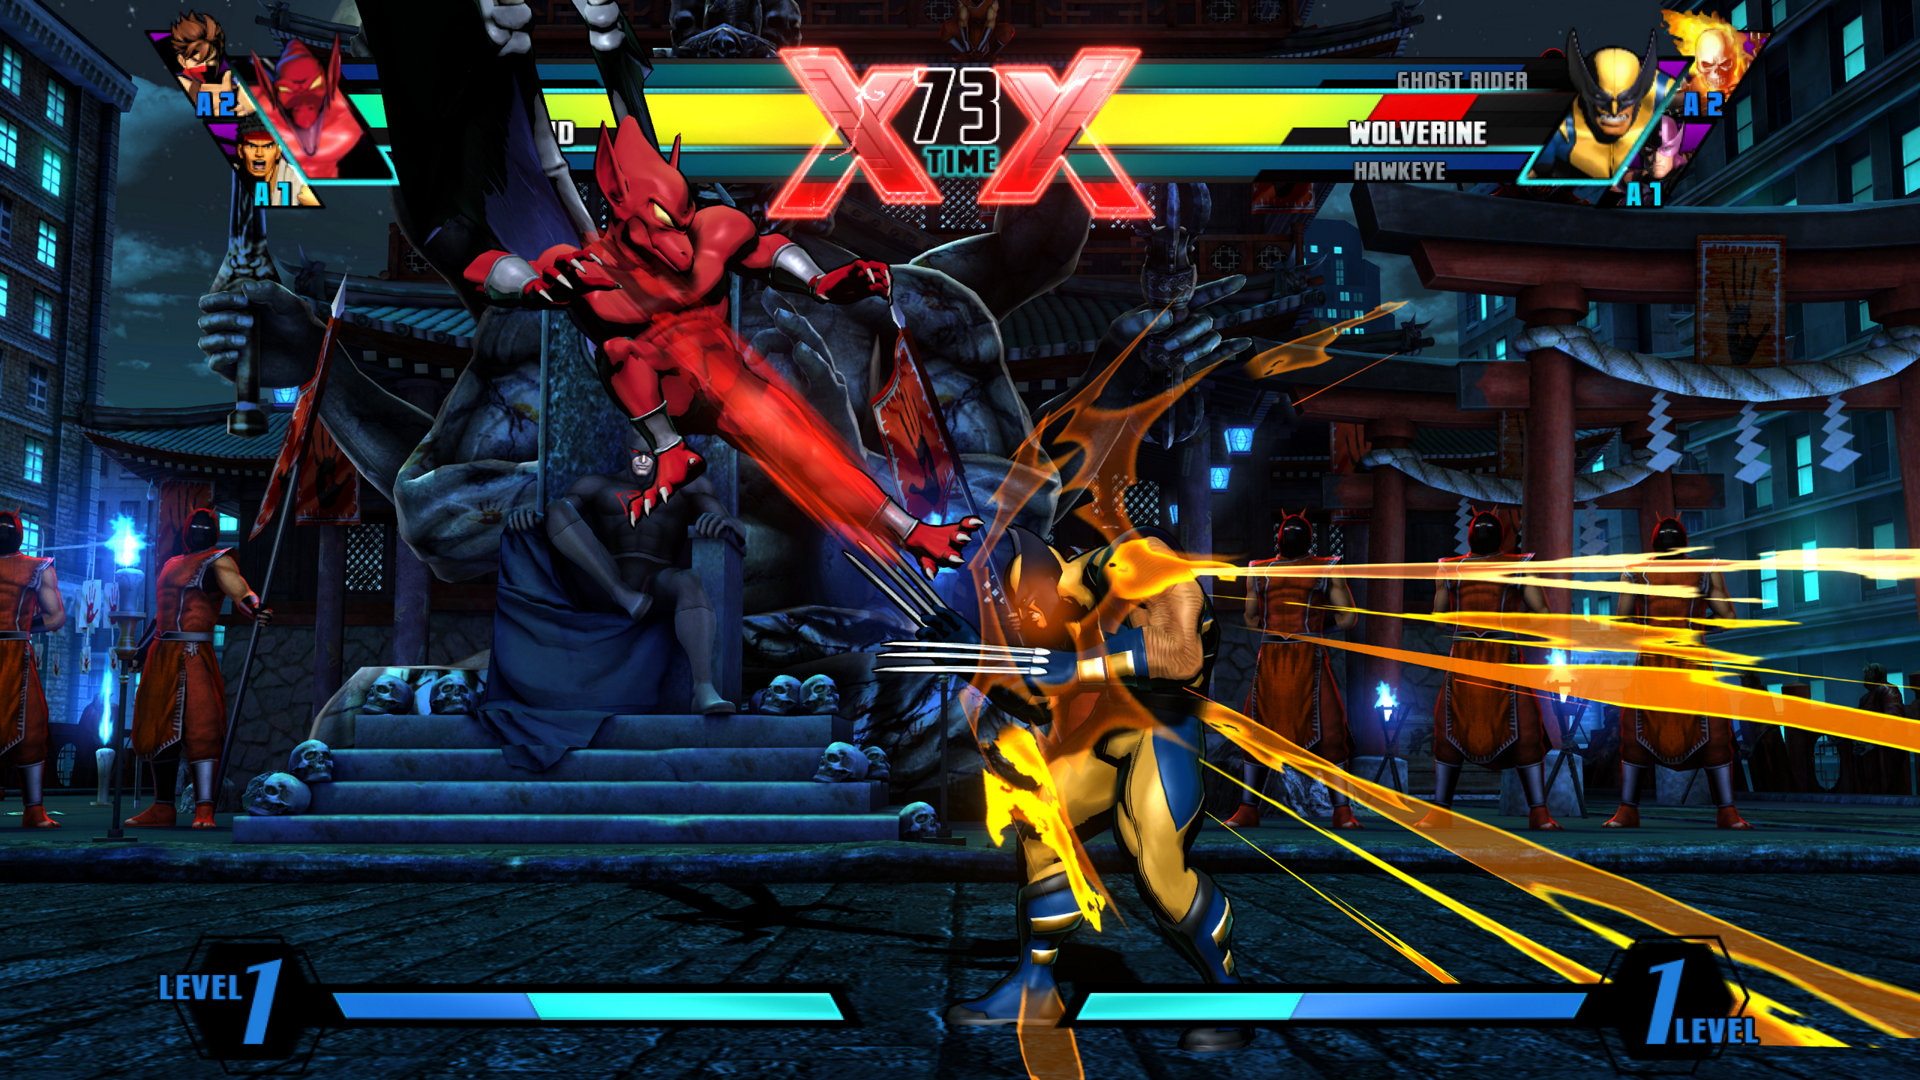 Rumor: Marvel vs. Capcom 4 Releasing In 2017